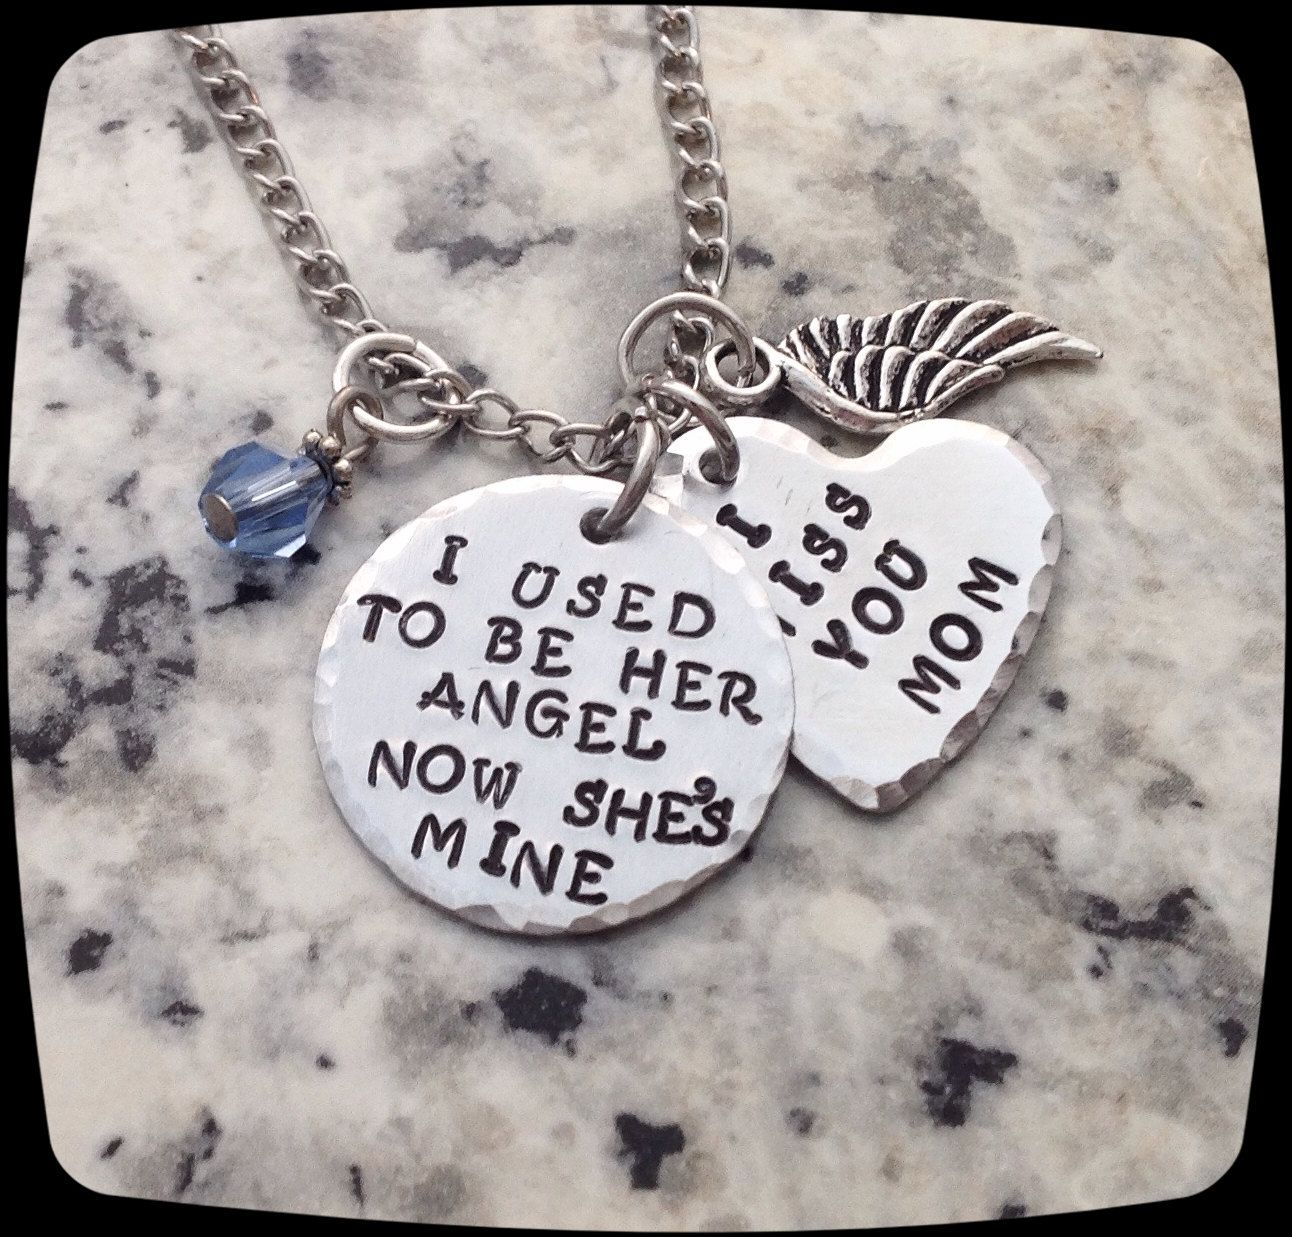 I Used To Be Her Angel Now She/'s Mine Antique Silver Keychain Gift for Mom